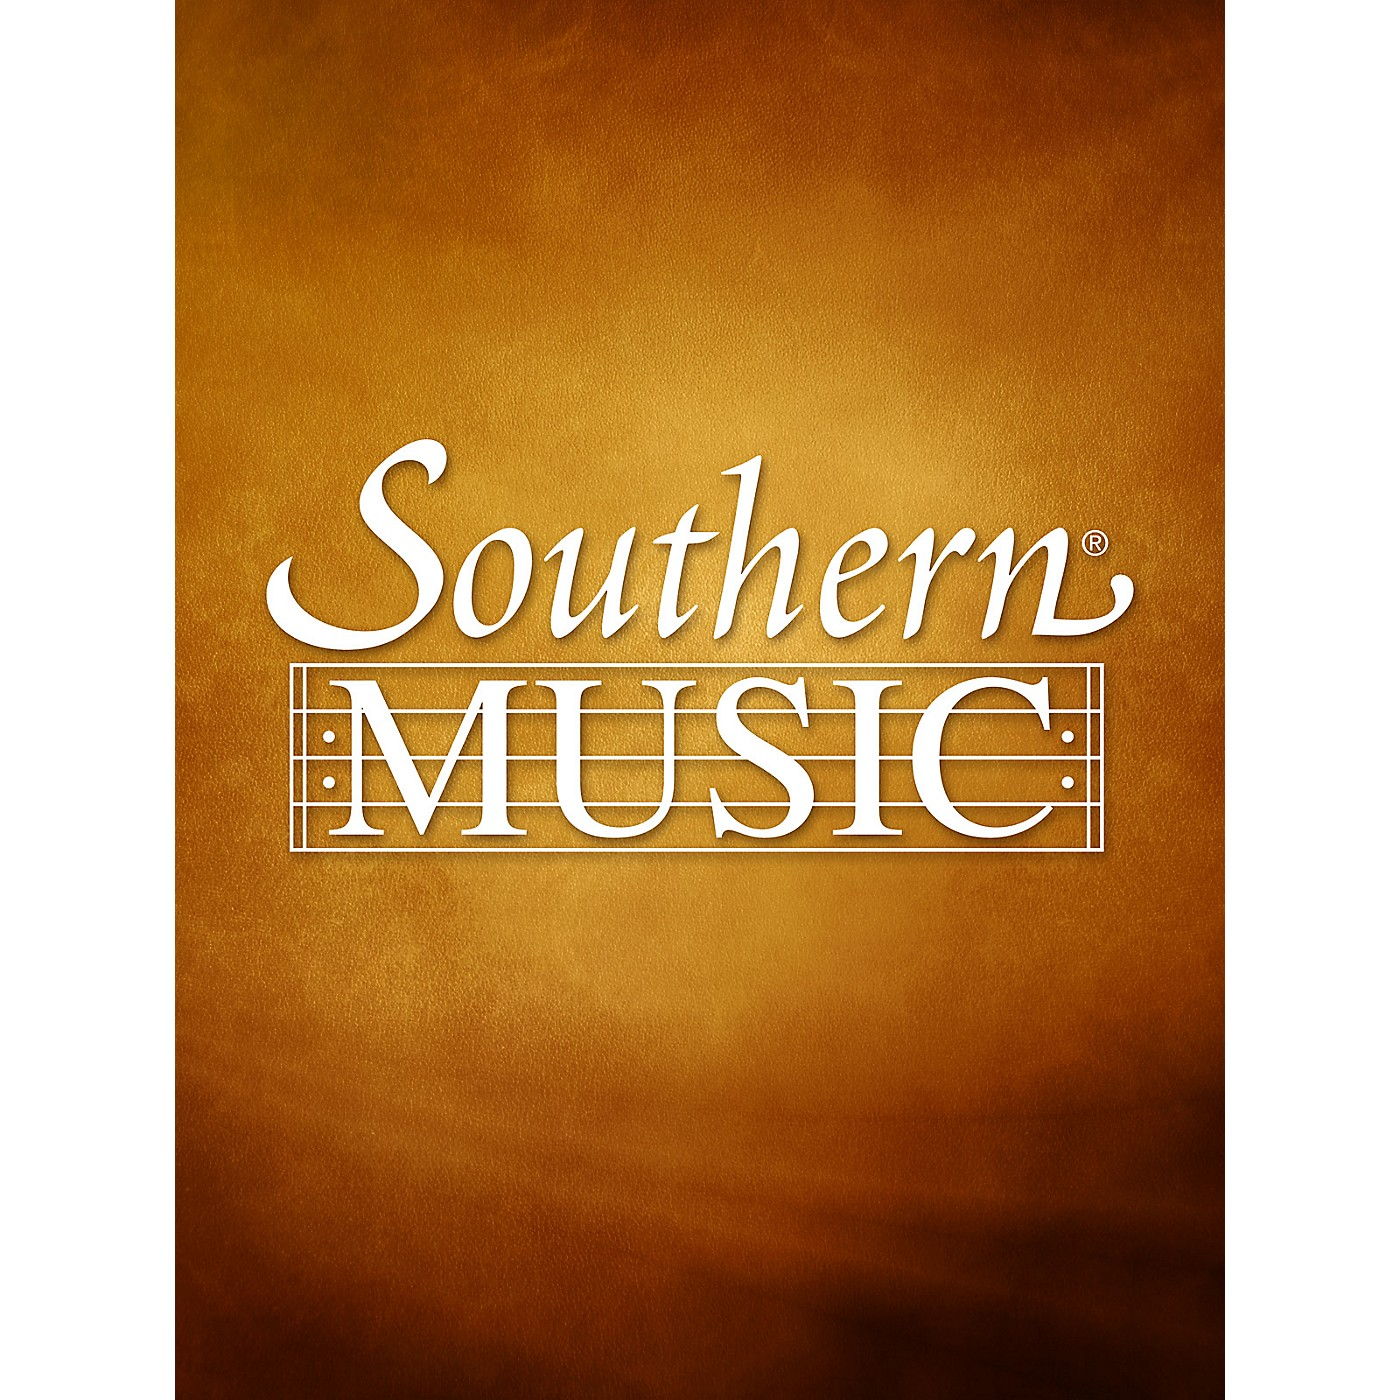 Southern Two Short Pieces (Flute) Southern Music Series Arranged by Donald Perkins thumbnail